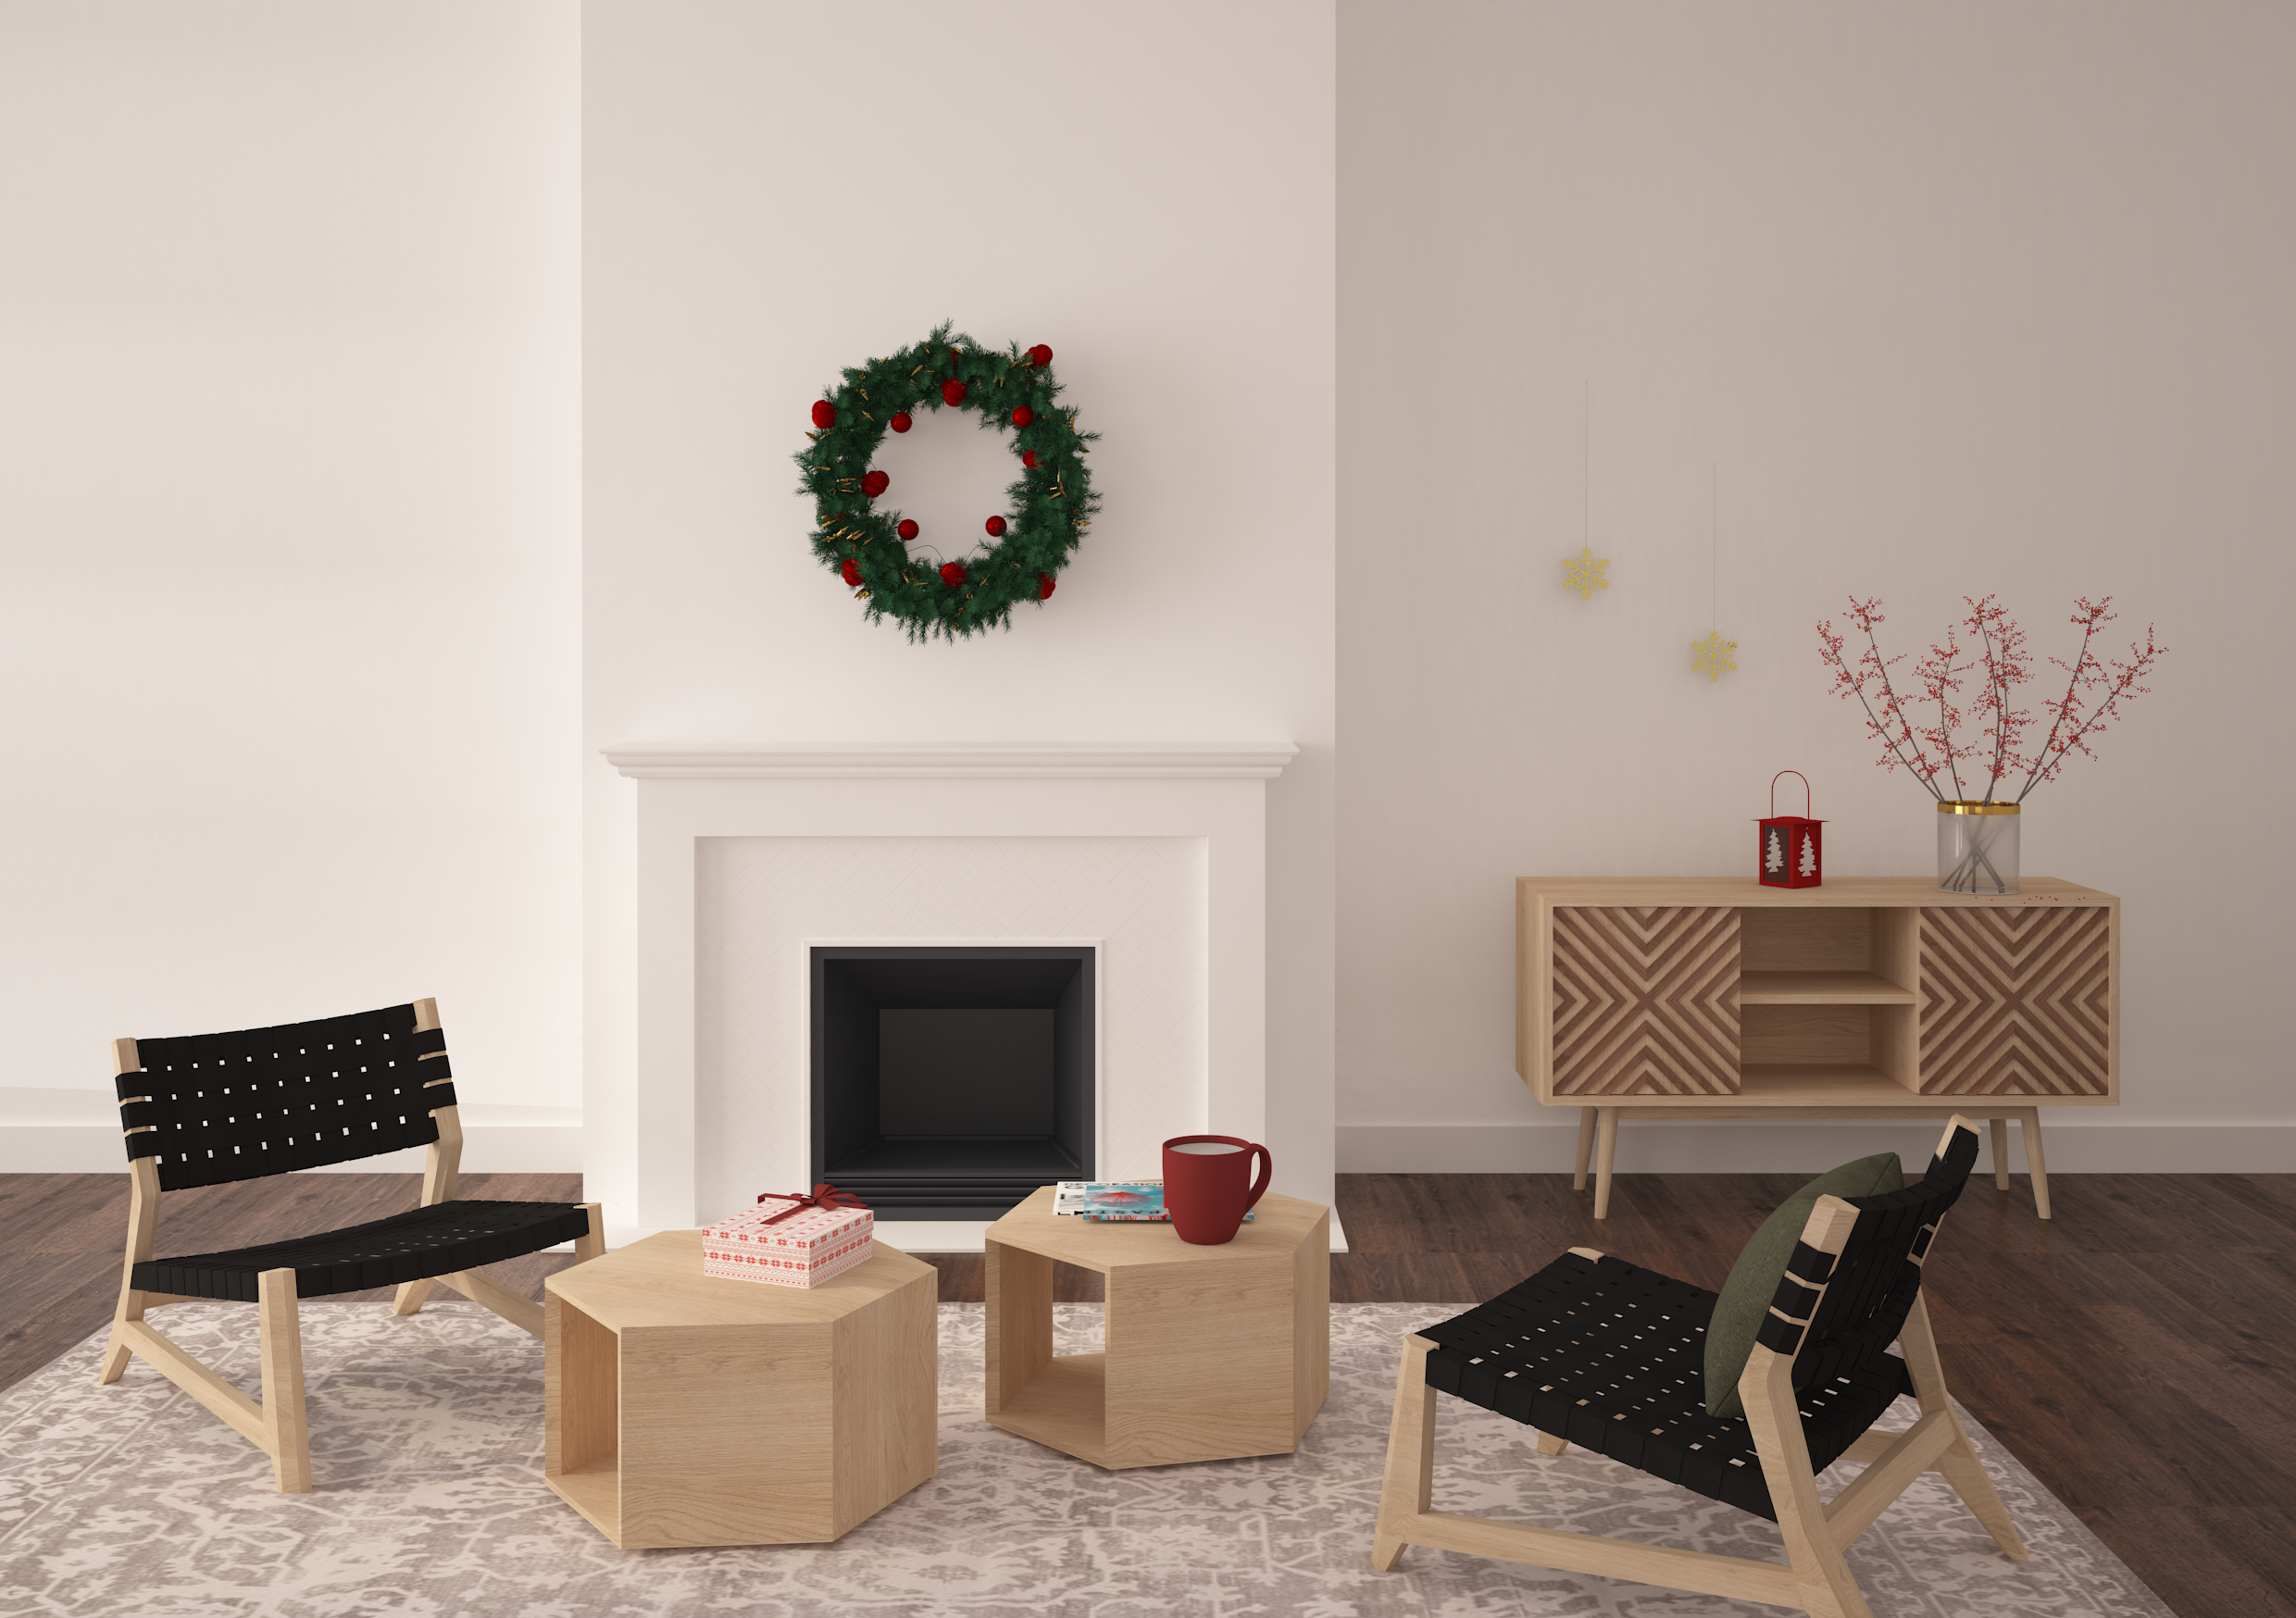 Get ready for your holiday dinner parties and good times with friends and family. Wow your guests with a stylish new living room and make sure you always offer them a comfy and cozy seat.  Here at WEWOOD, the perfect pieces are right at your fingertips and ready to ship, check below our exclusive selection of design furniture that you can order today and have it at your home before Christmas celebrations.